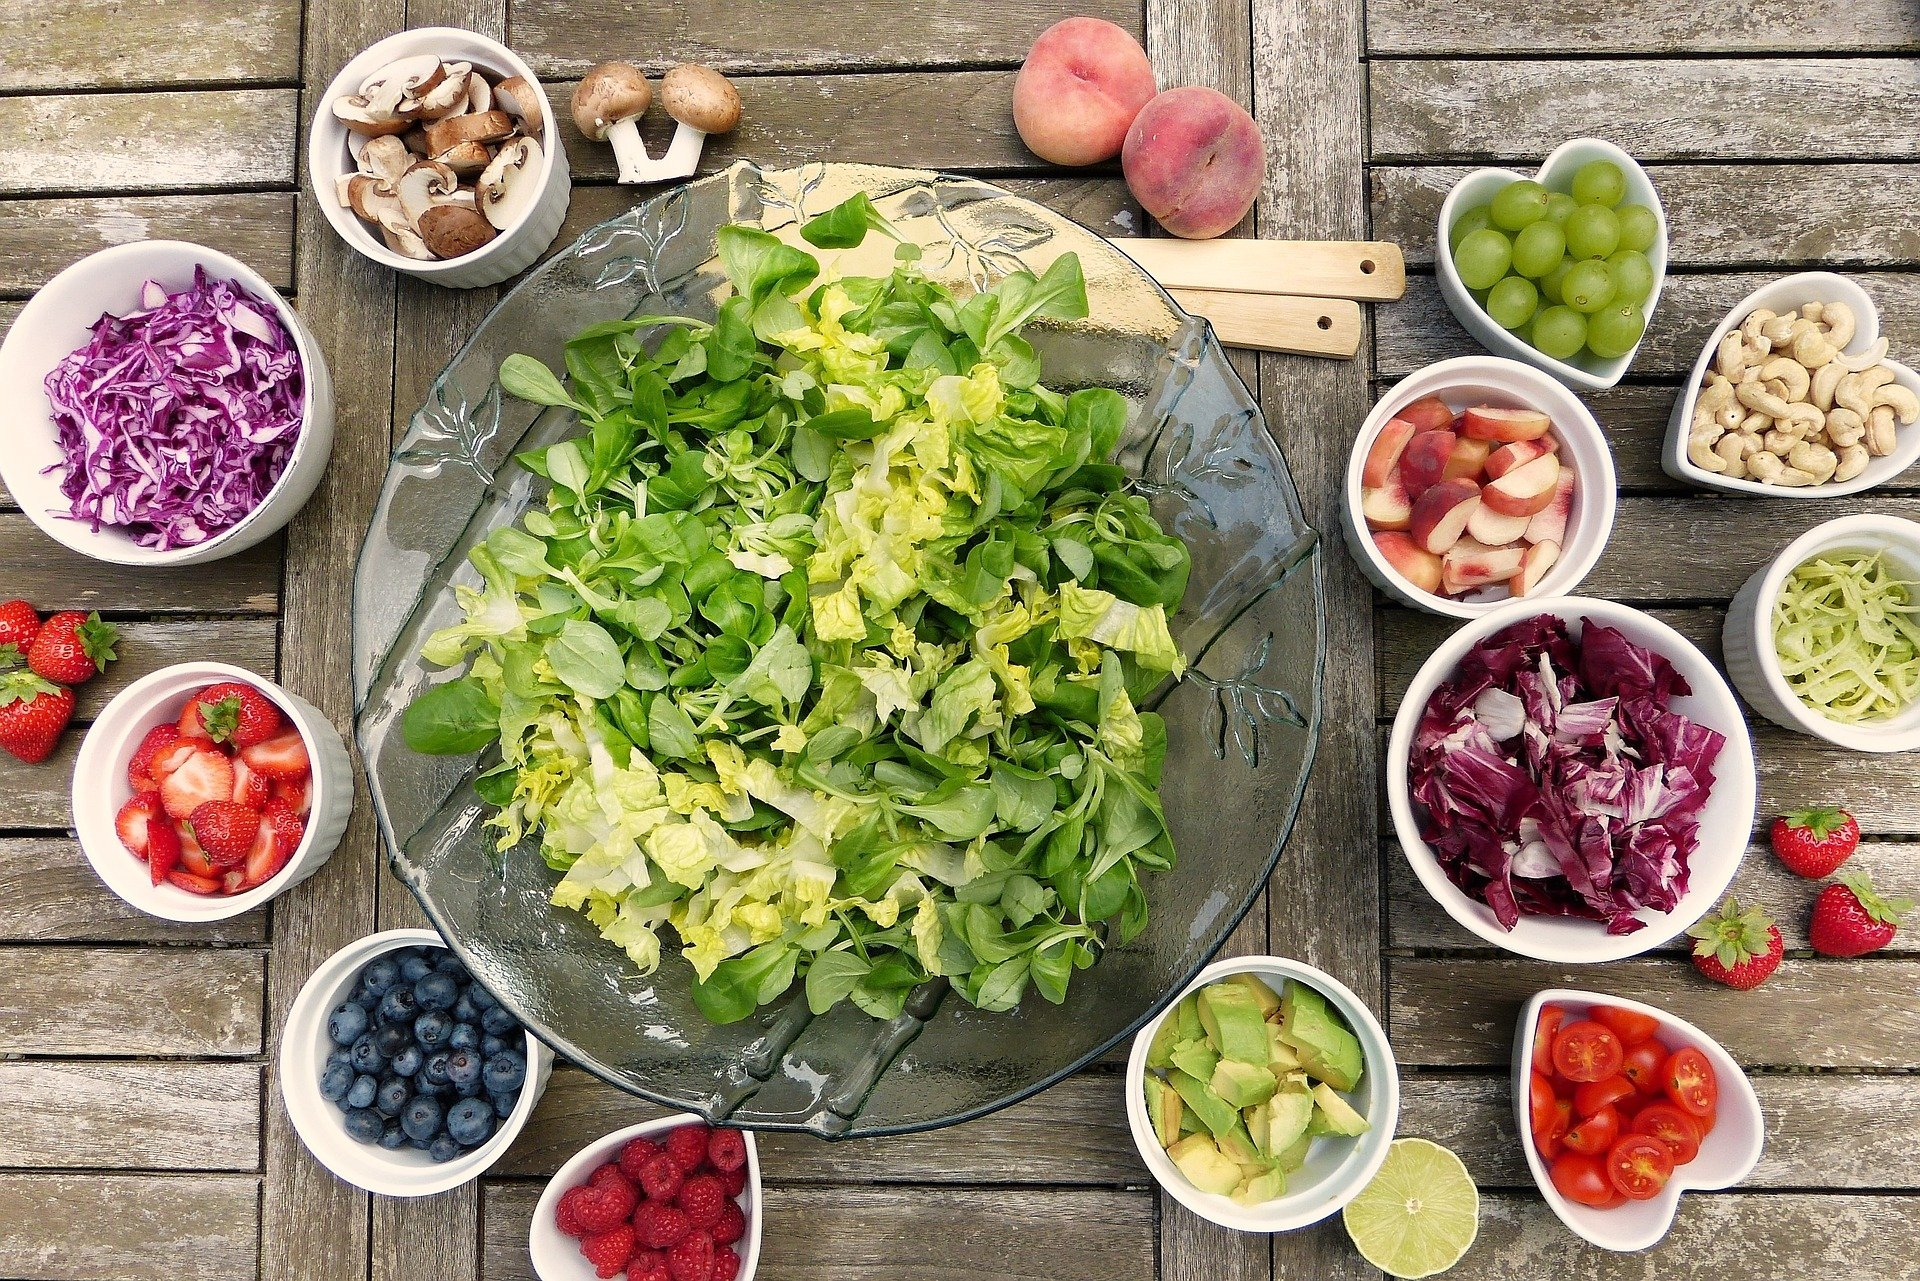 High protein vegetarian diet for weight loss